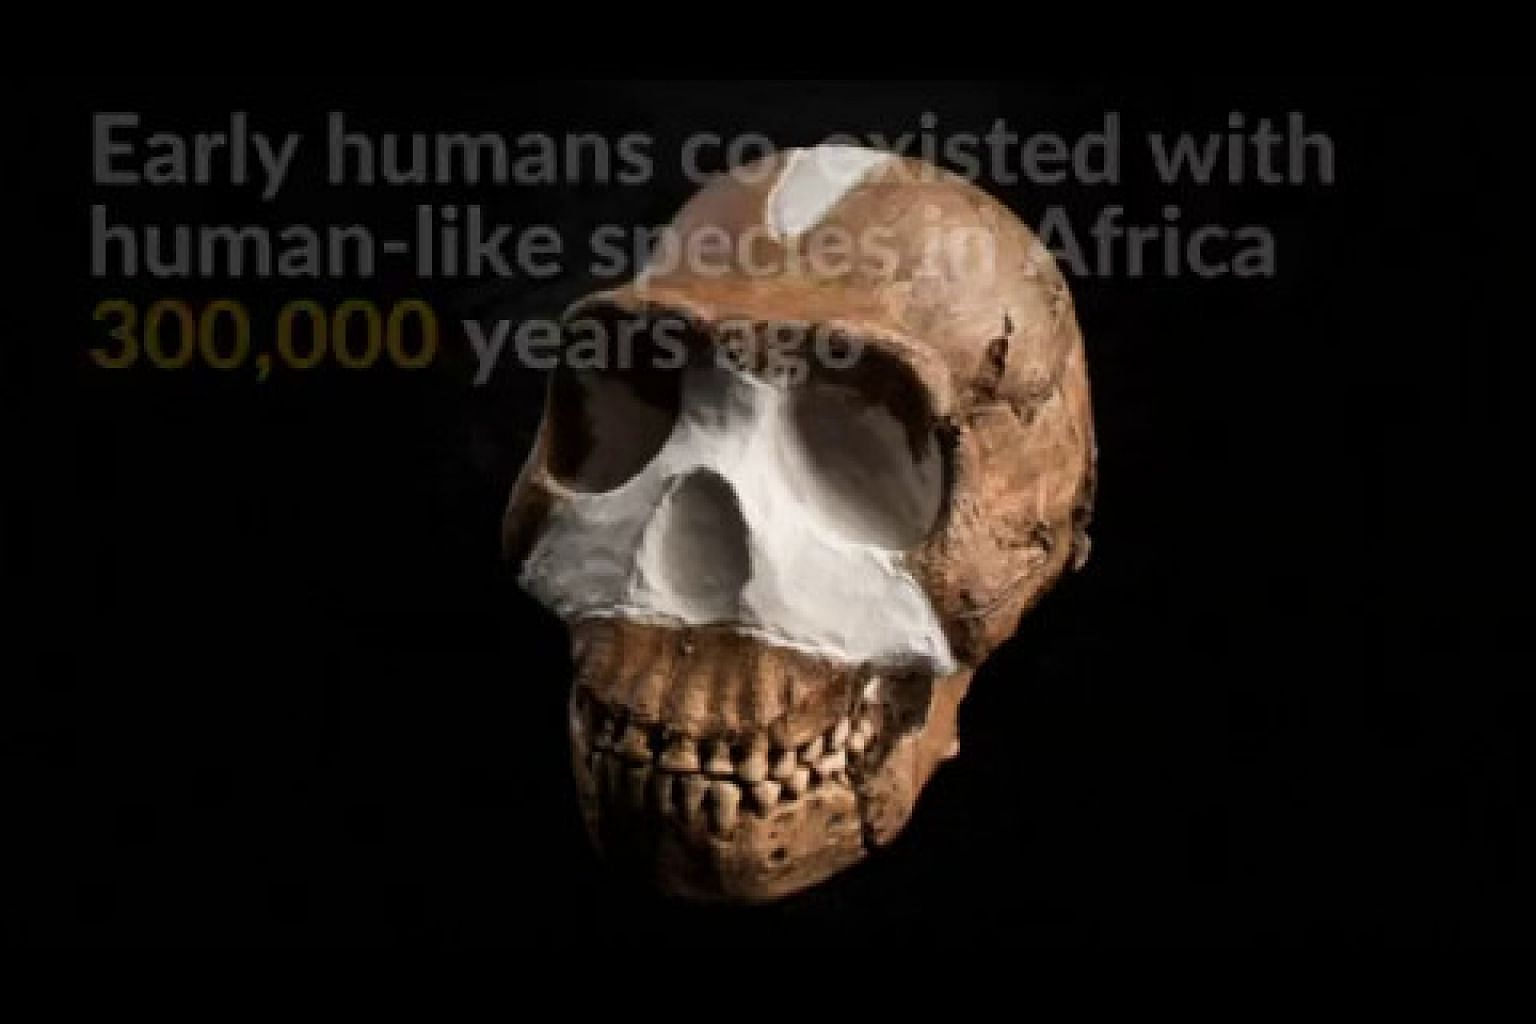 Early humans co-existed with human-like species 300,000 years ago in Africa